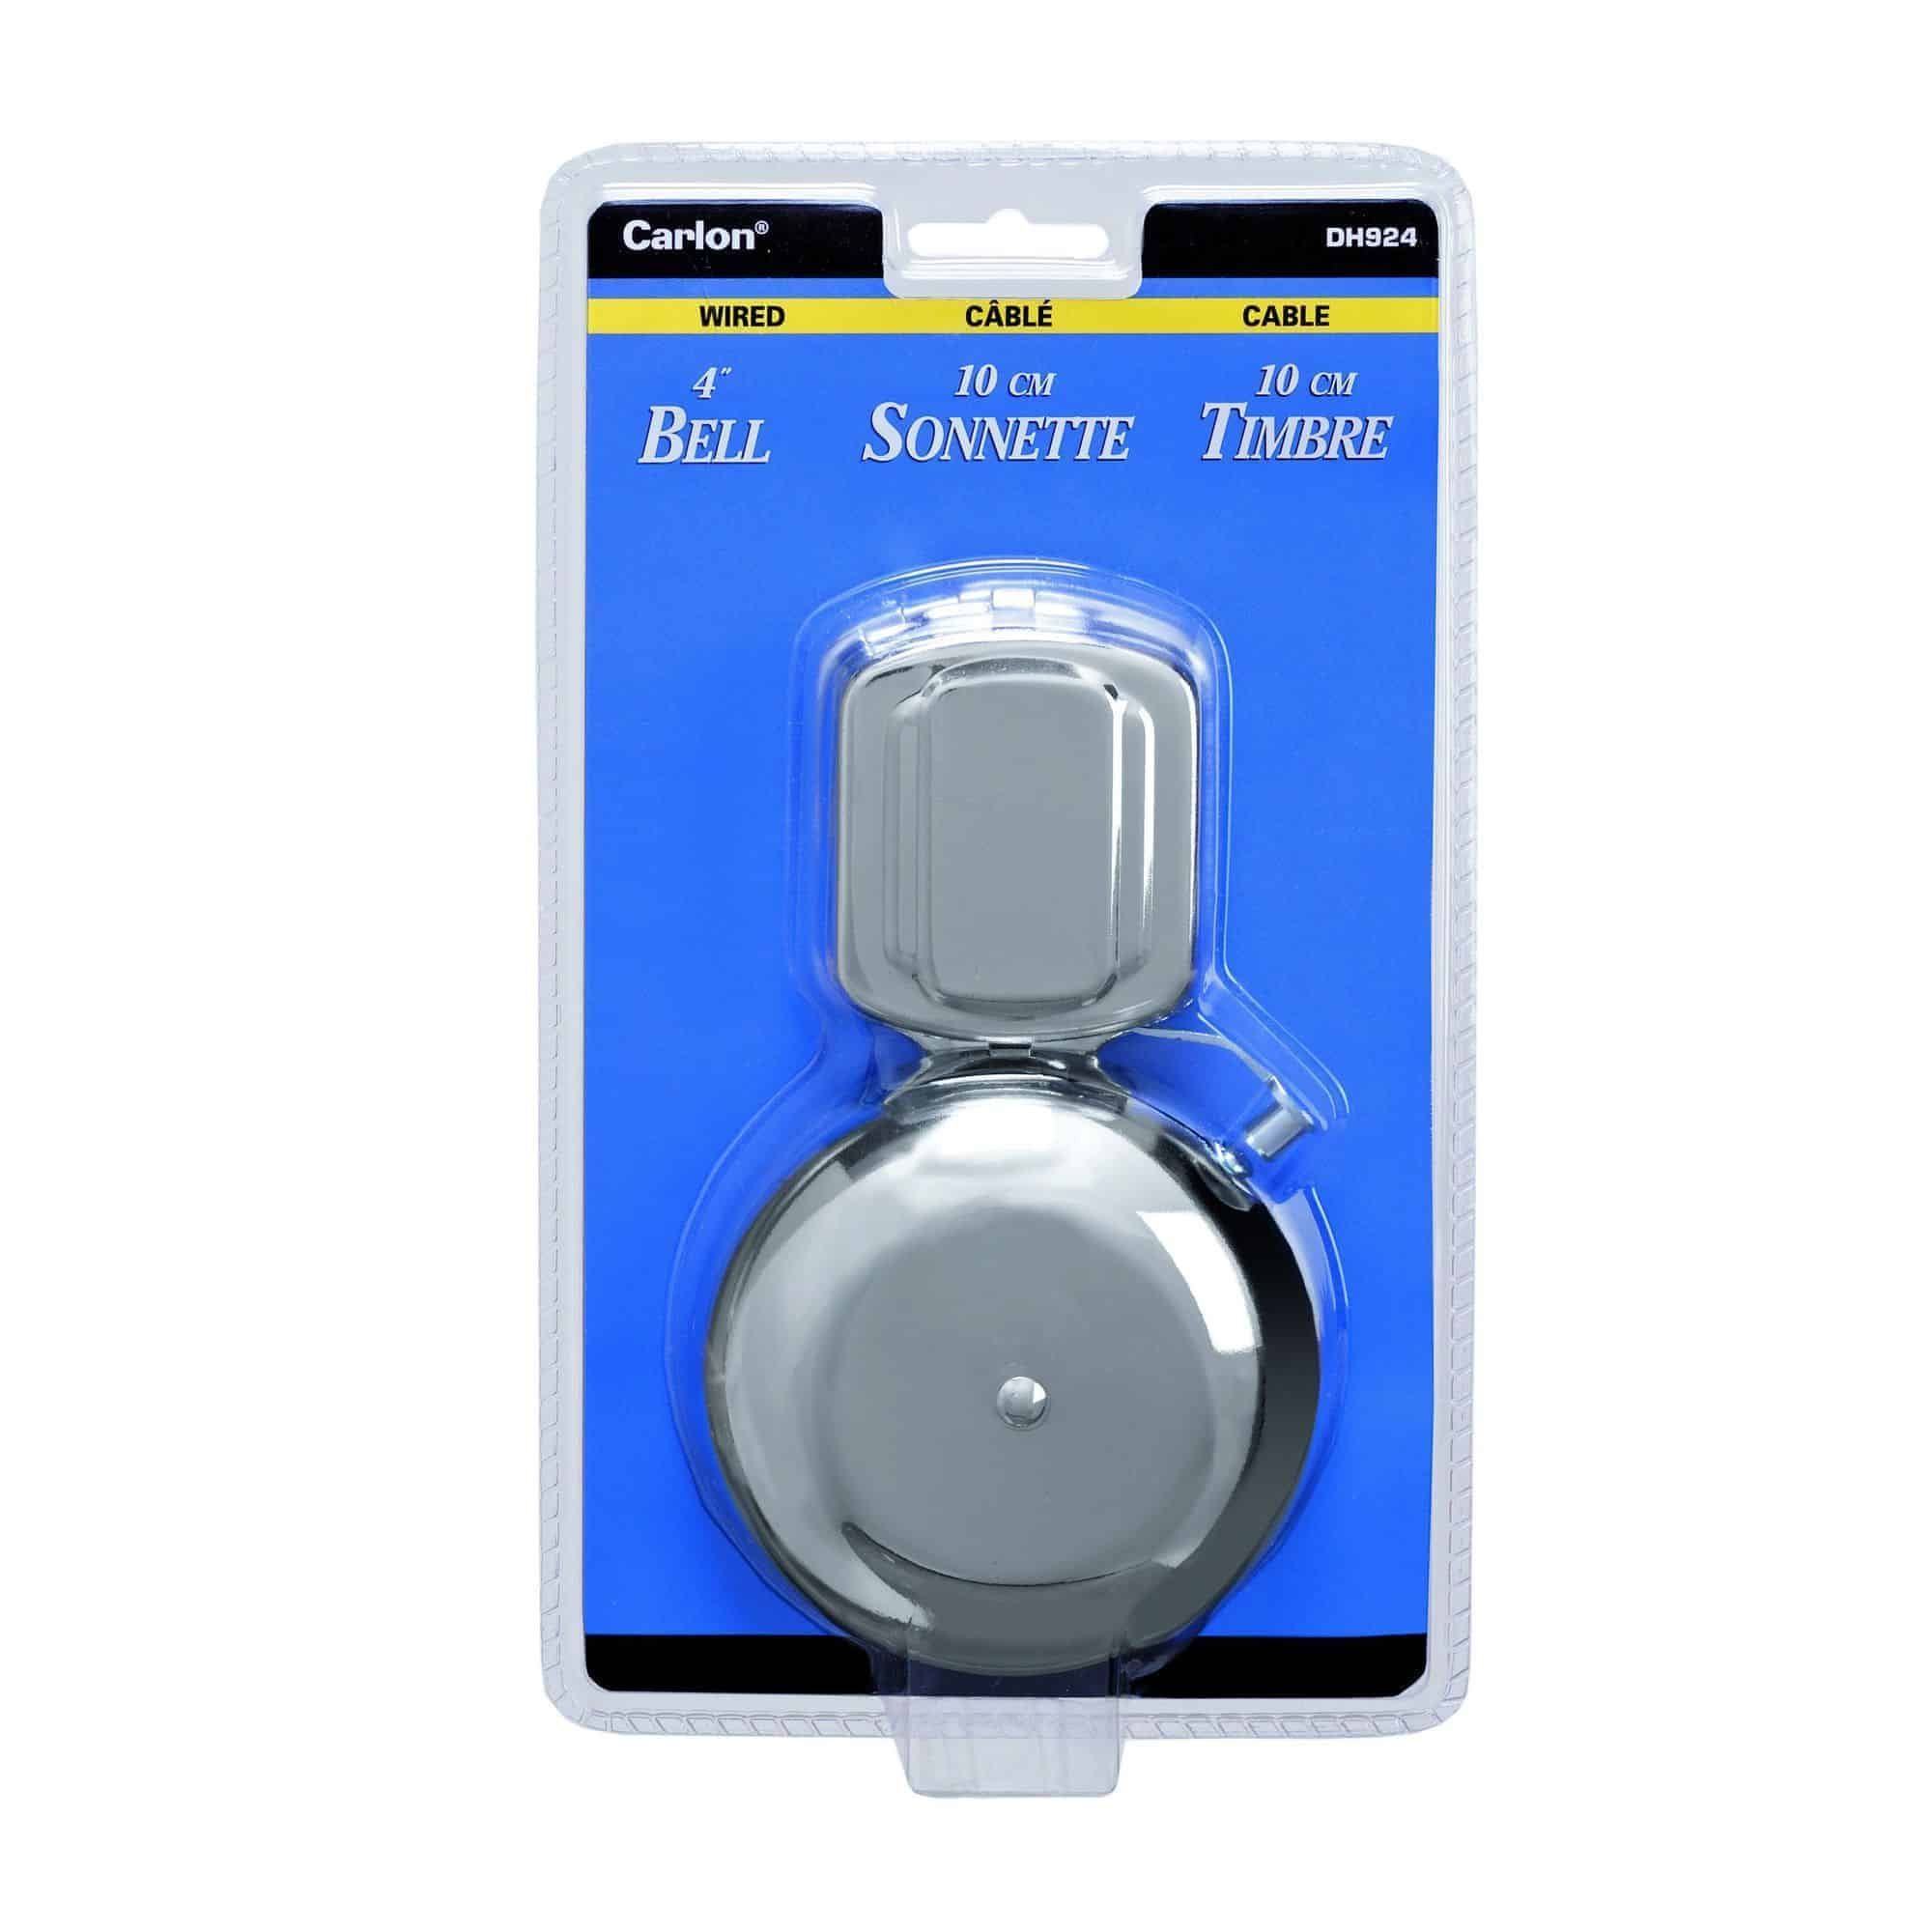 Carlon Dh924 4 039 039 Wired Bell Buzzer For Business Use On Sale For 036 29 99 At 1800doorbell Https Www 1800doorbell Com Dh924 C In 2020 Buzzer Wire Doorbell